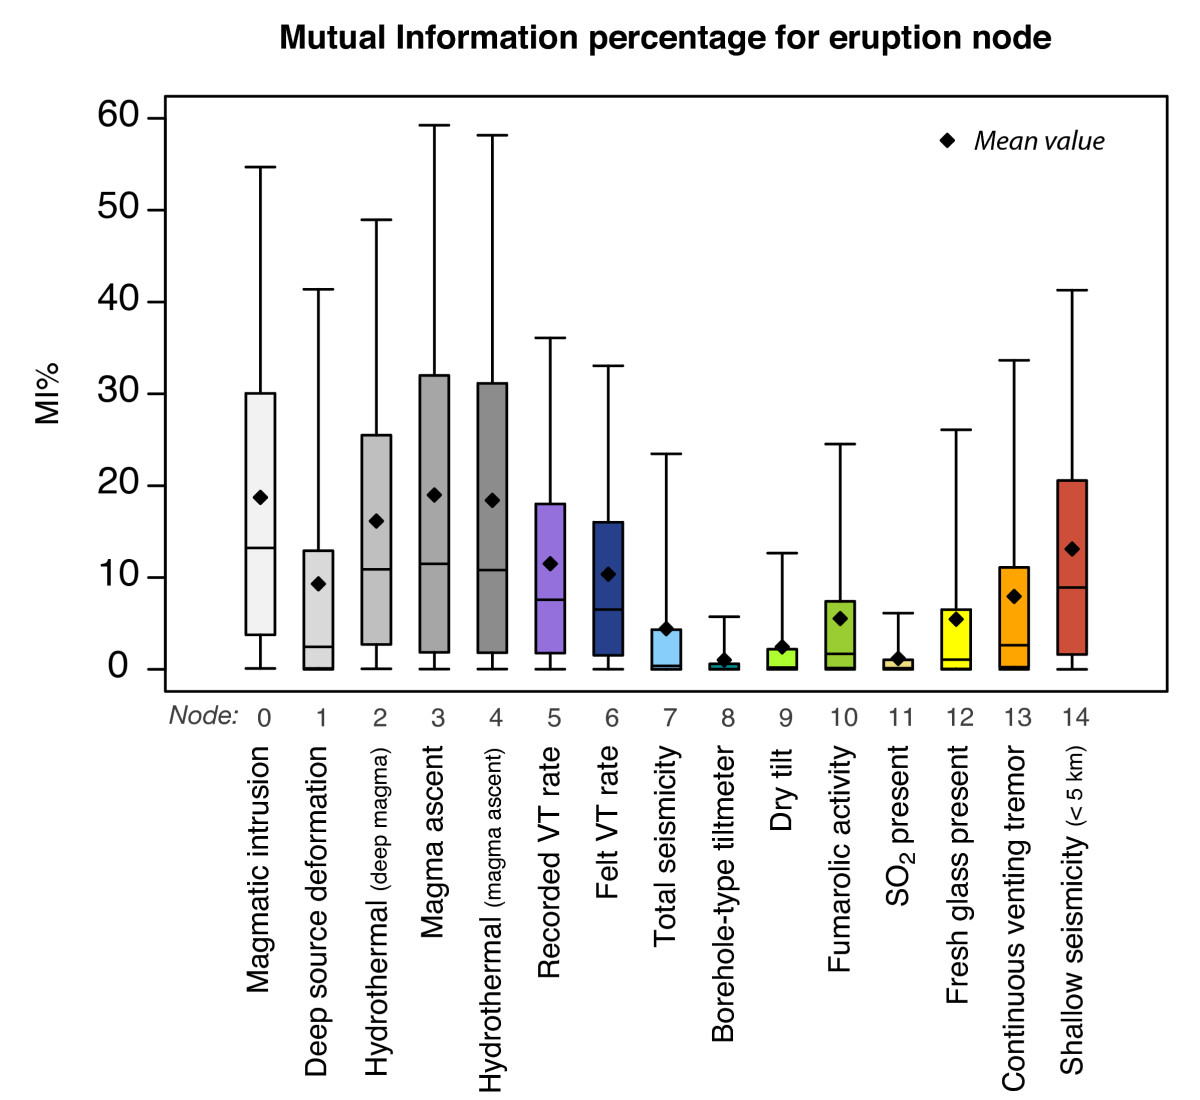 https://static-content.springer.com/image/art%3A10.1186%2F2191-5040-3-3/MediaObjects/13617_2013_Article_11_Fig8_HTML.jpg